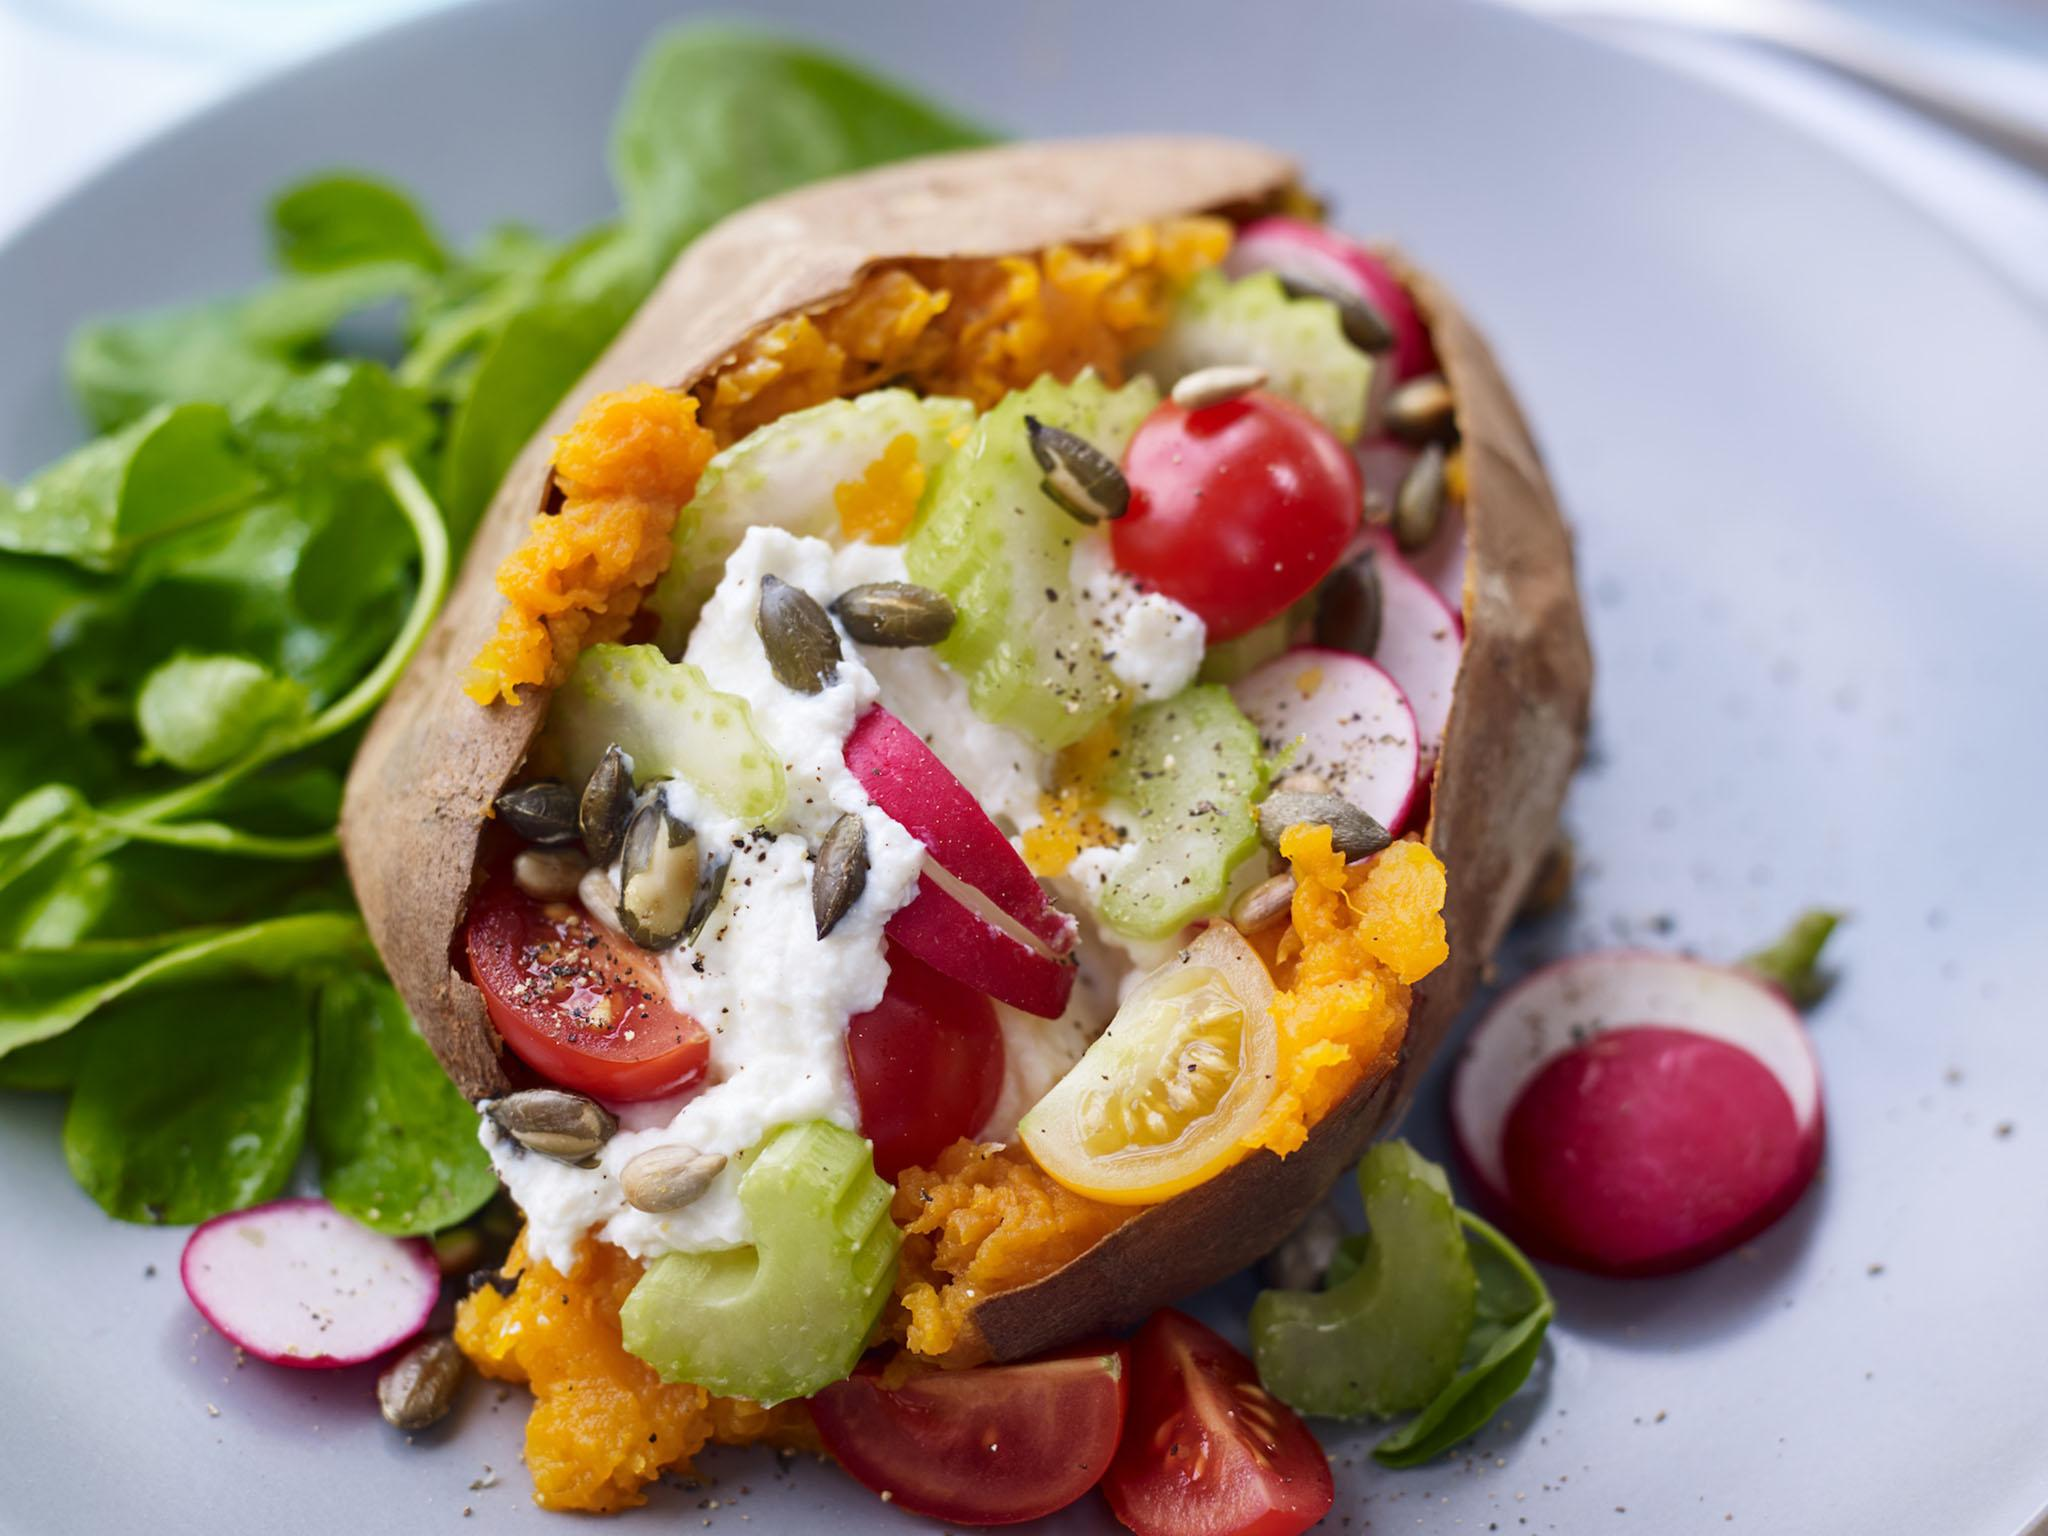 How to make a loaded sweet potato with celery, radish and cherry tomatoes